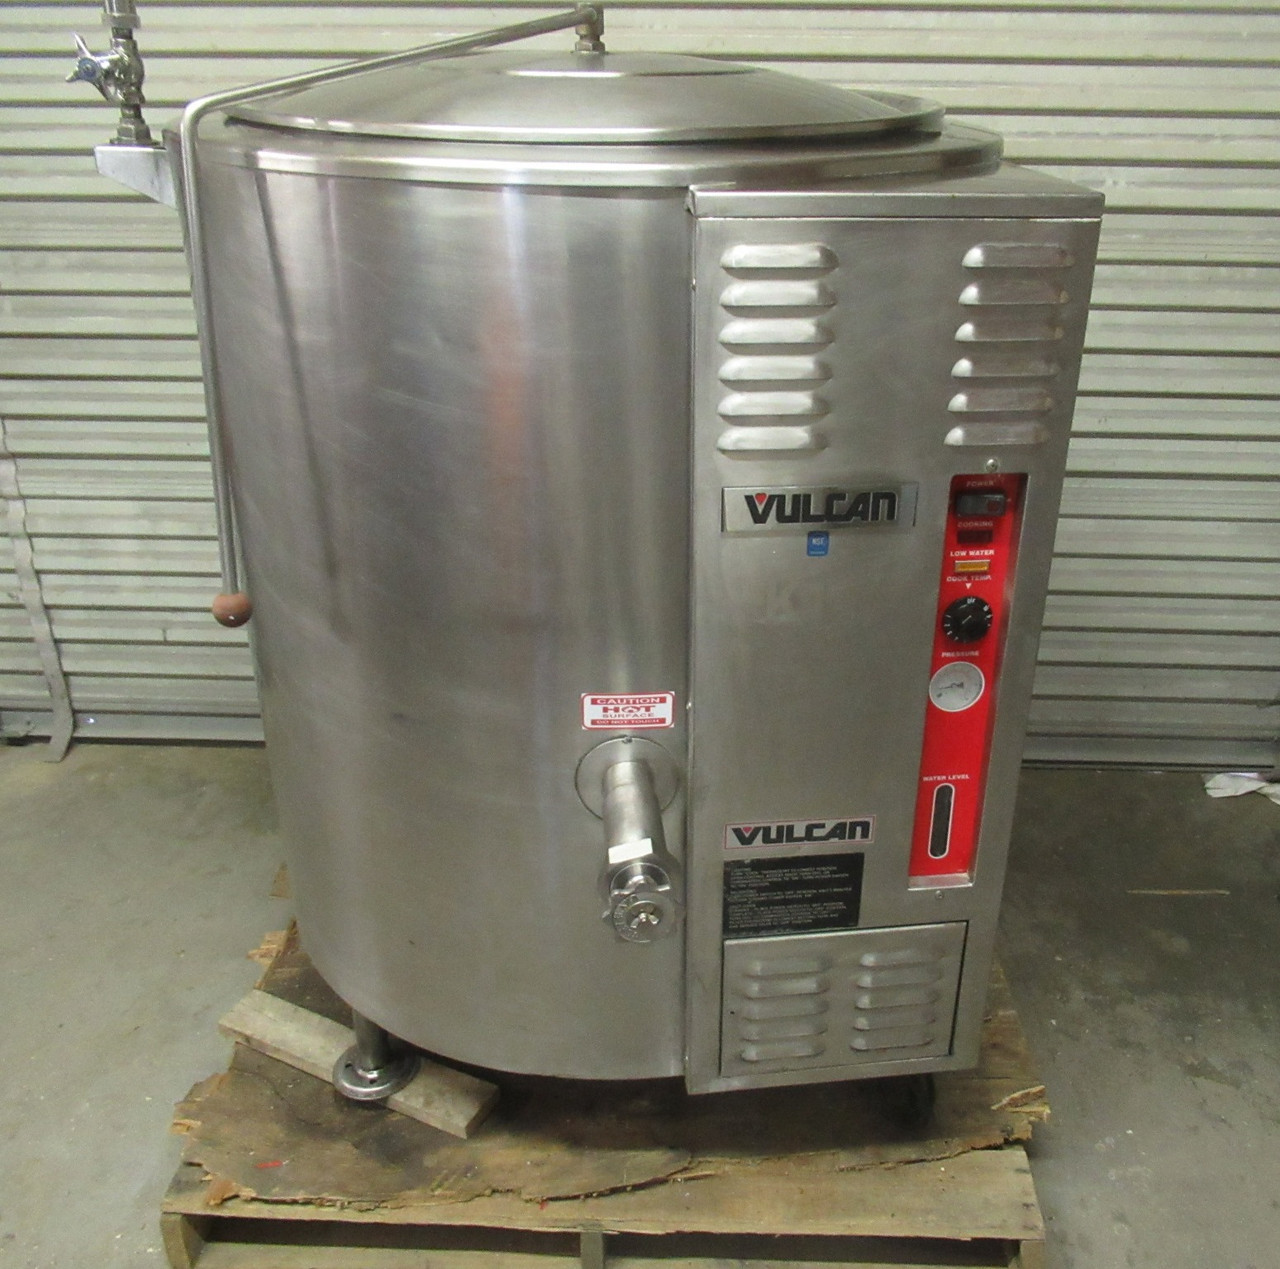 Vulcan Hart VGL-60 Stationary Nat Gas Stationary Jacketed Steam Kettle